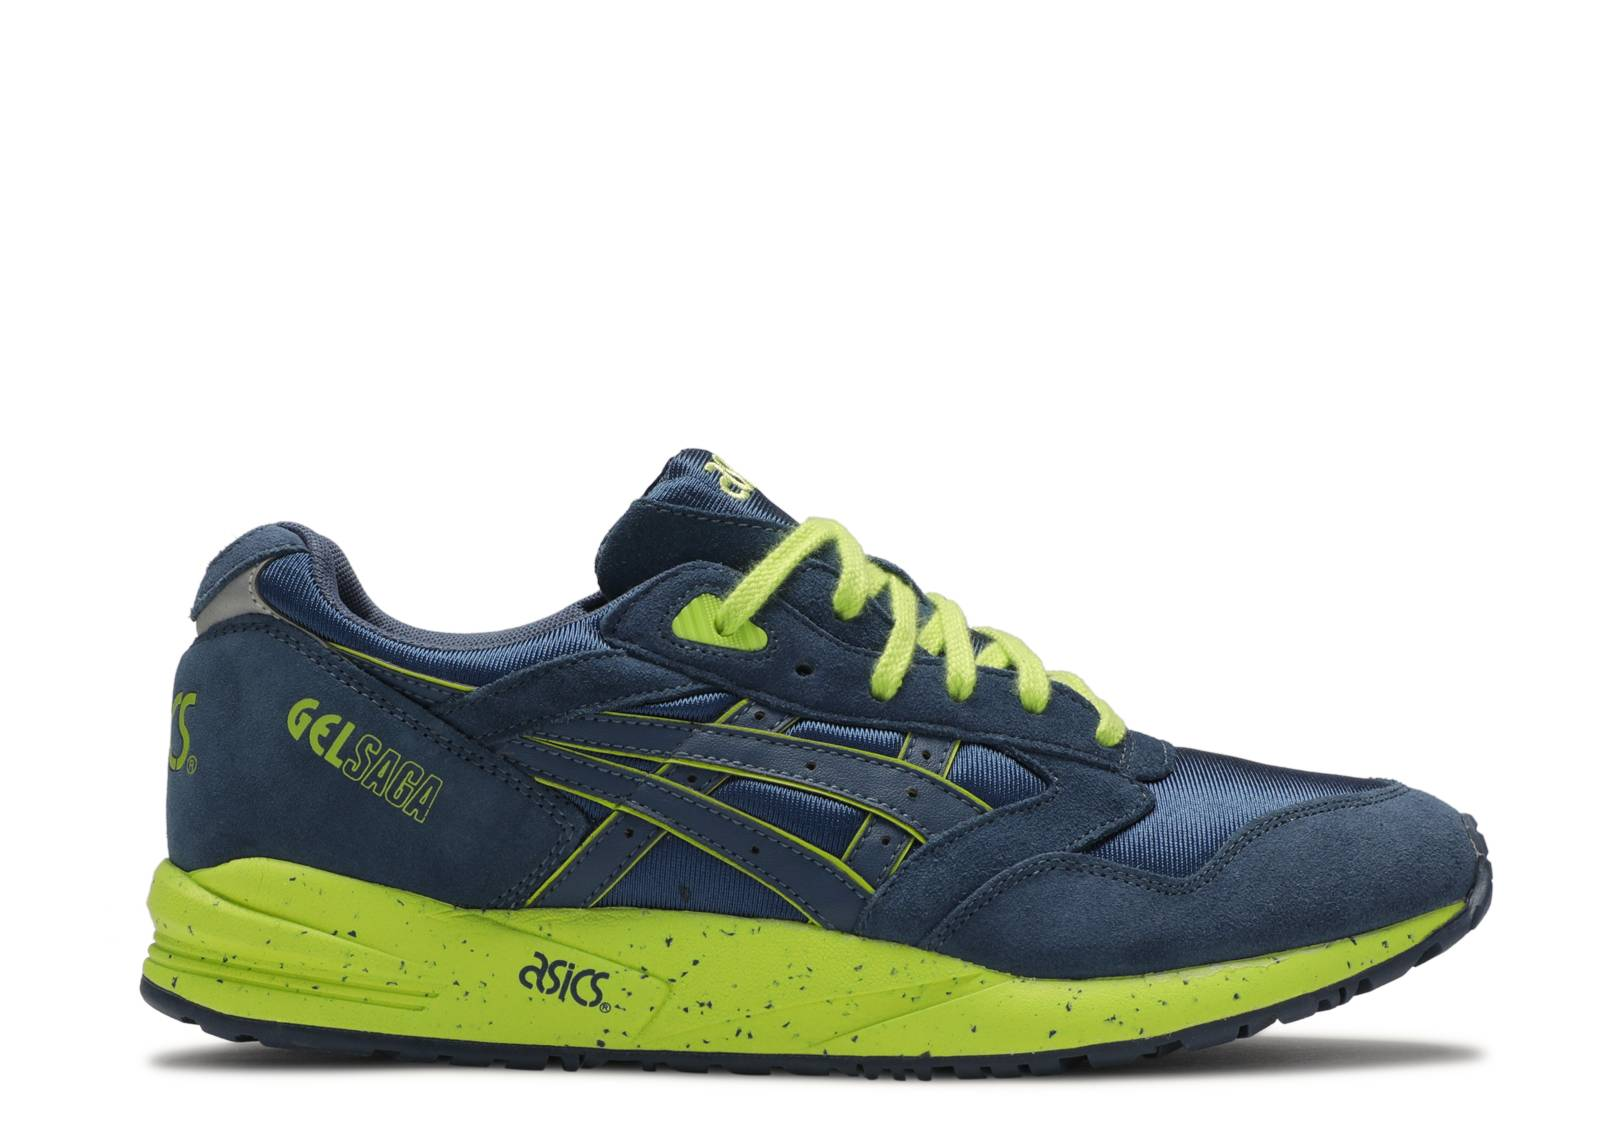 asics GELSAGA navy X yellow H137K 5151 ASICS gel saga dark blue X limited model out of the Yellow Sea